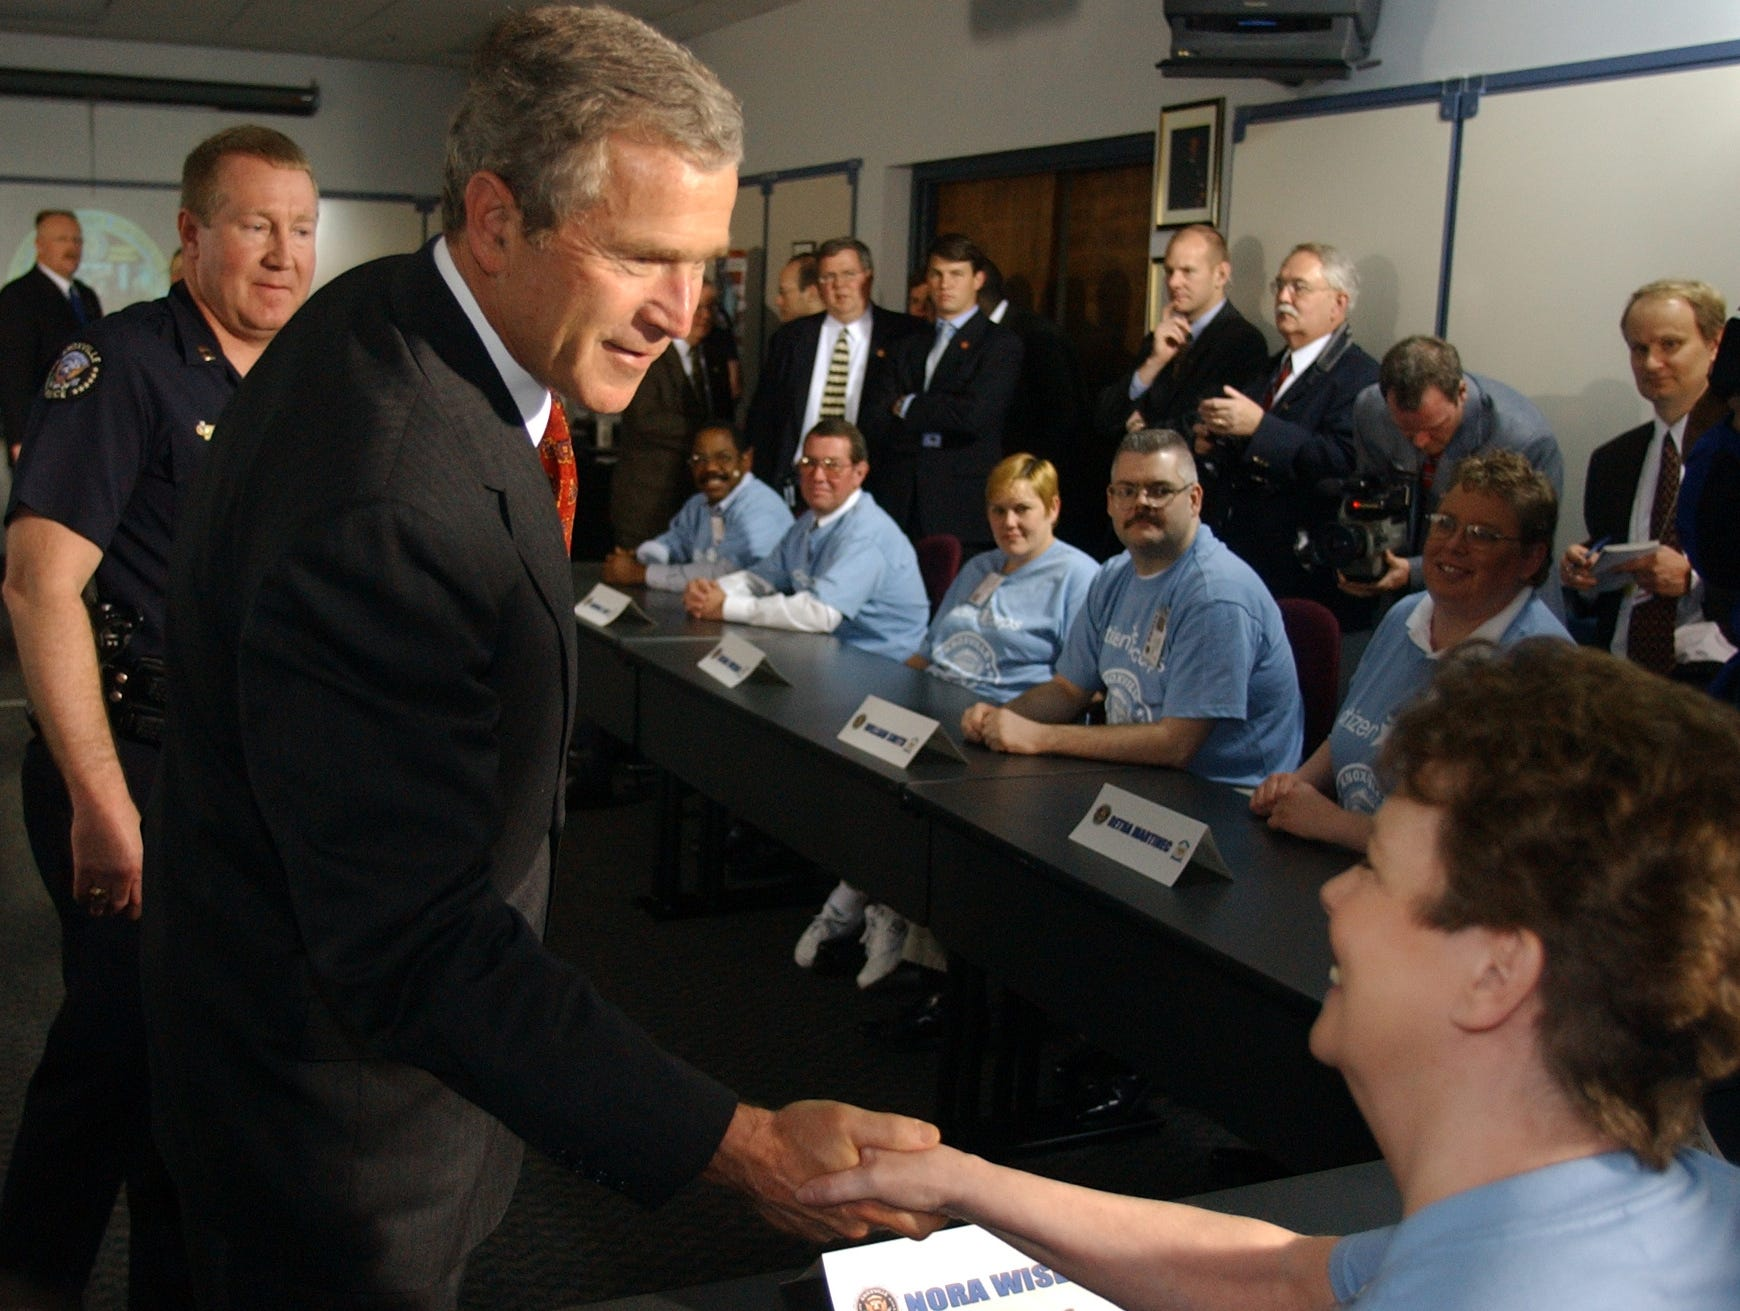 President George W. Bush shakes hands with Nora Wiser with the Citizens Corps as Knoxville Police Department Capt. Don Green escorts the President through the Moses Center Monday, April 8, 2002.